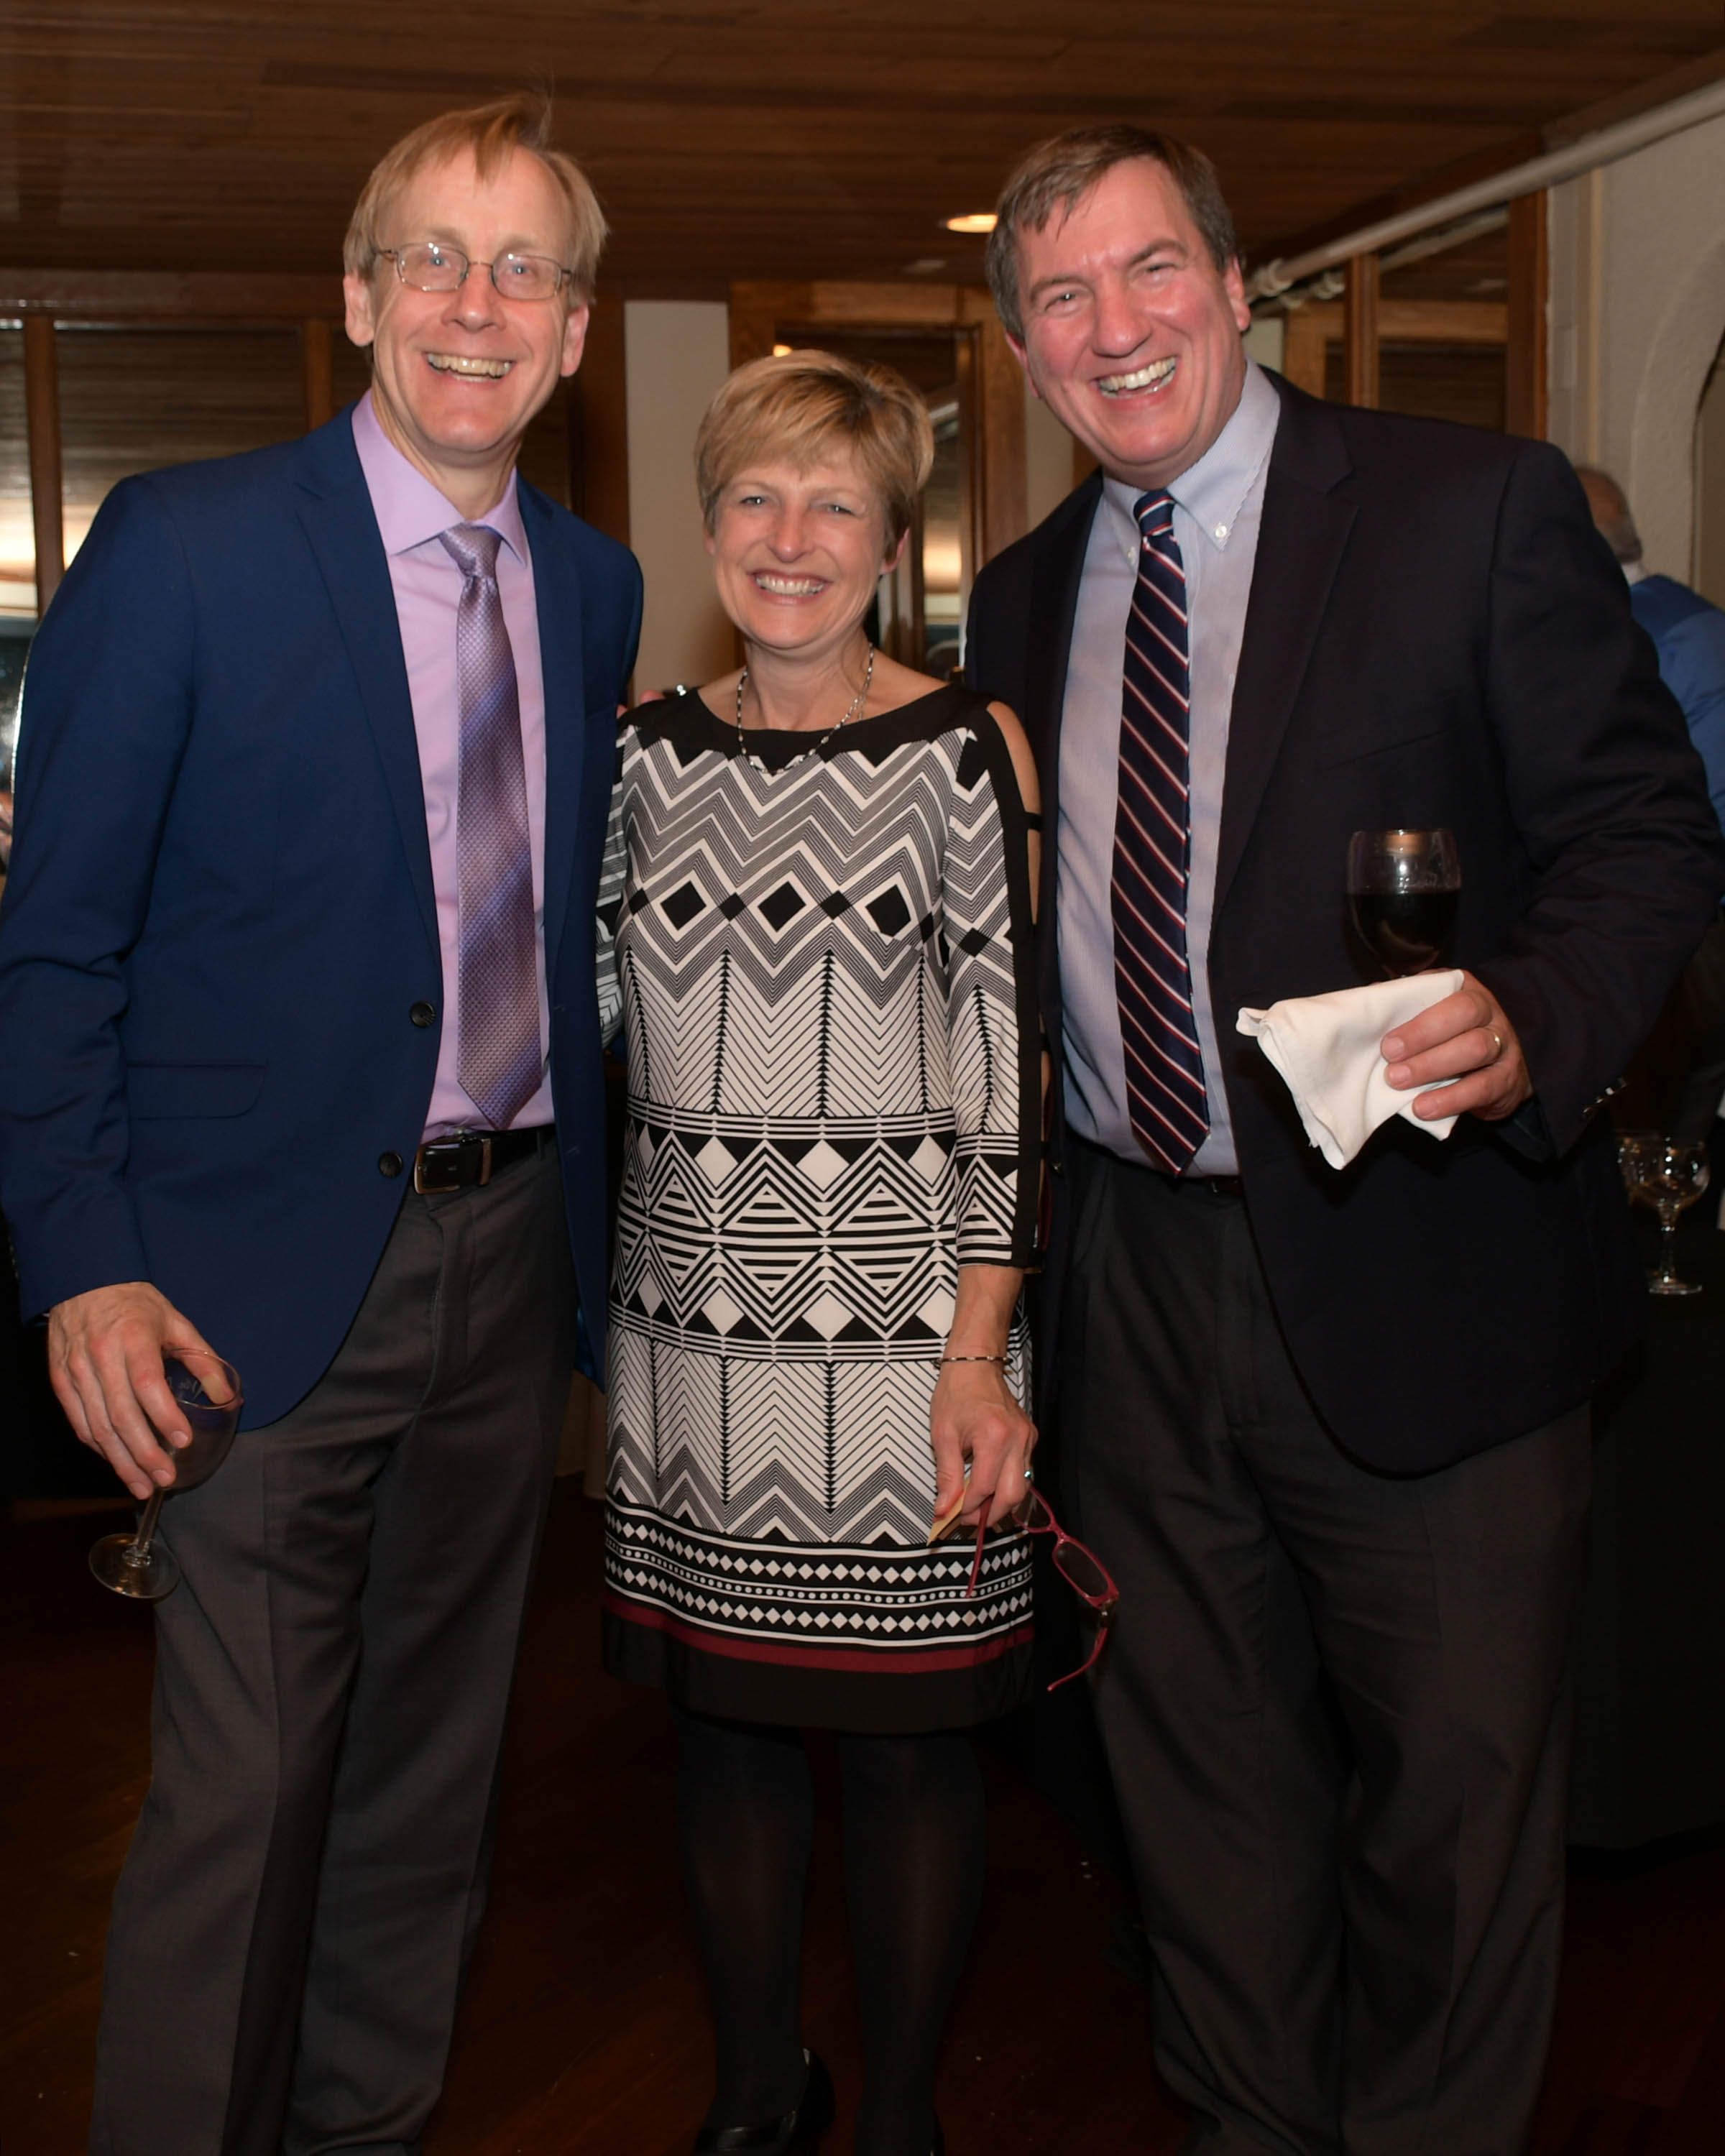 Vin Le Soir to benefit AIM Services, Inc. group of three people at wine tasting